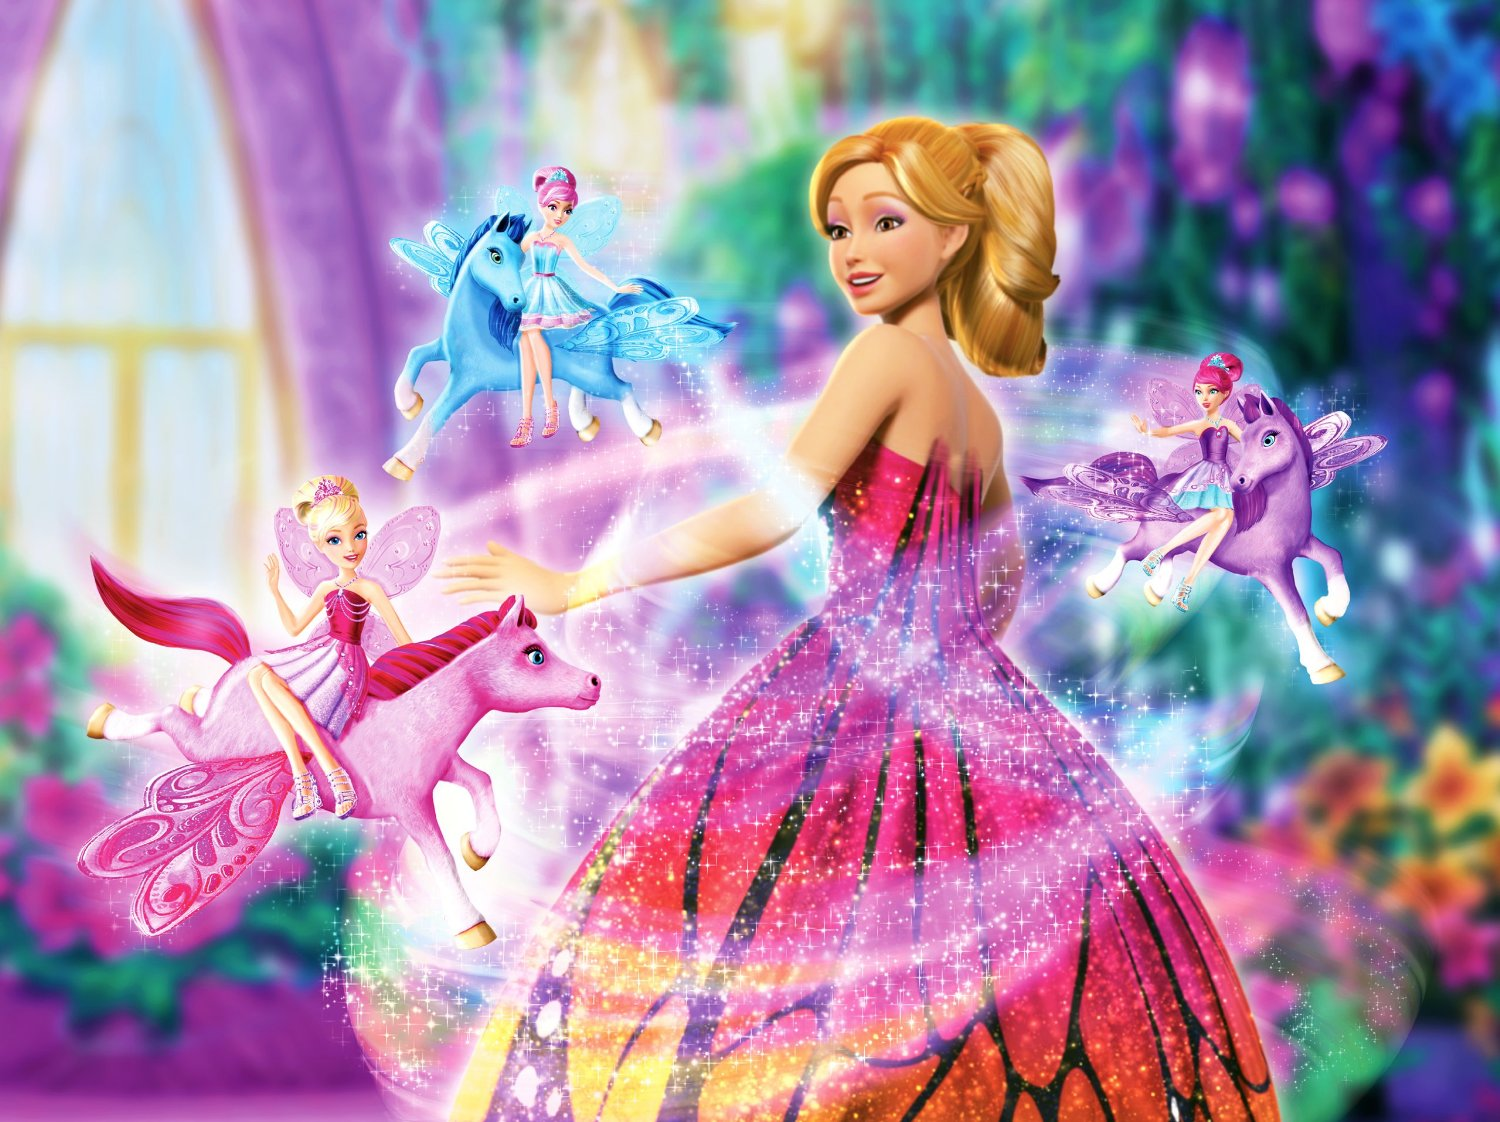 barbie mariposa and the fairy princess full movie in hindi dailymotion